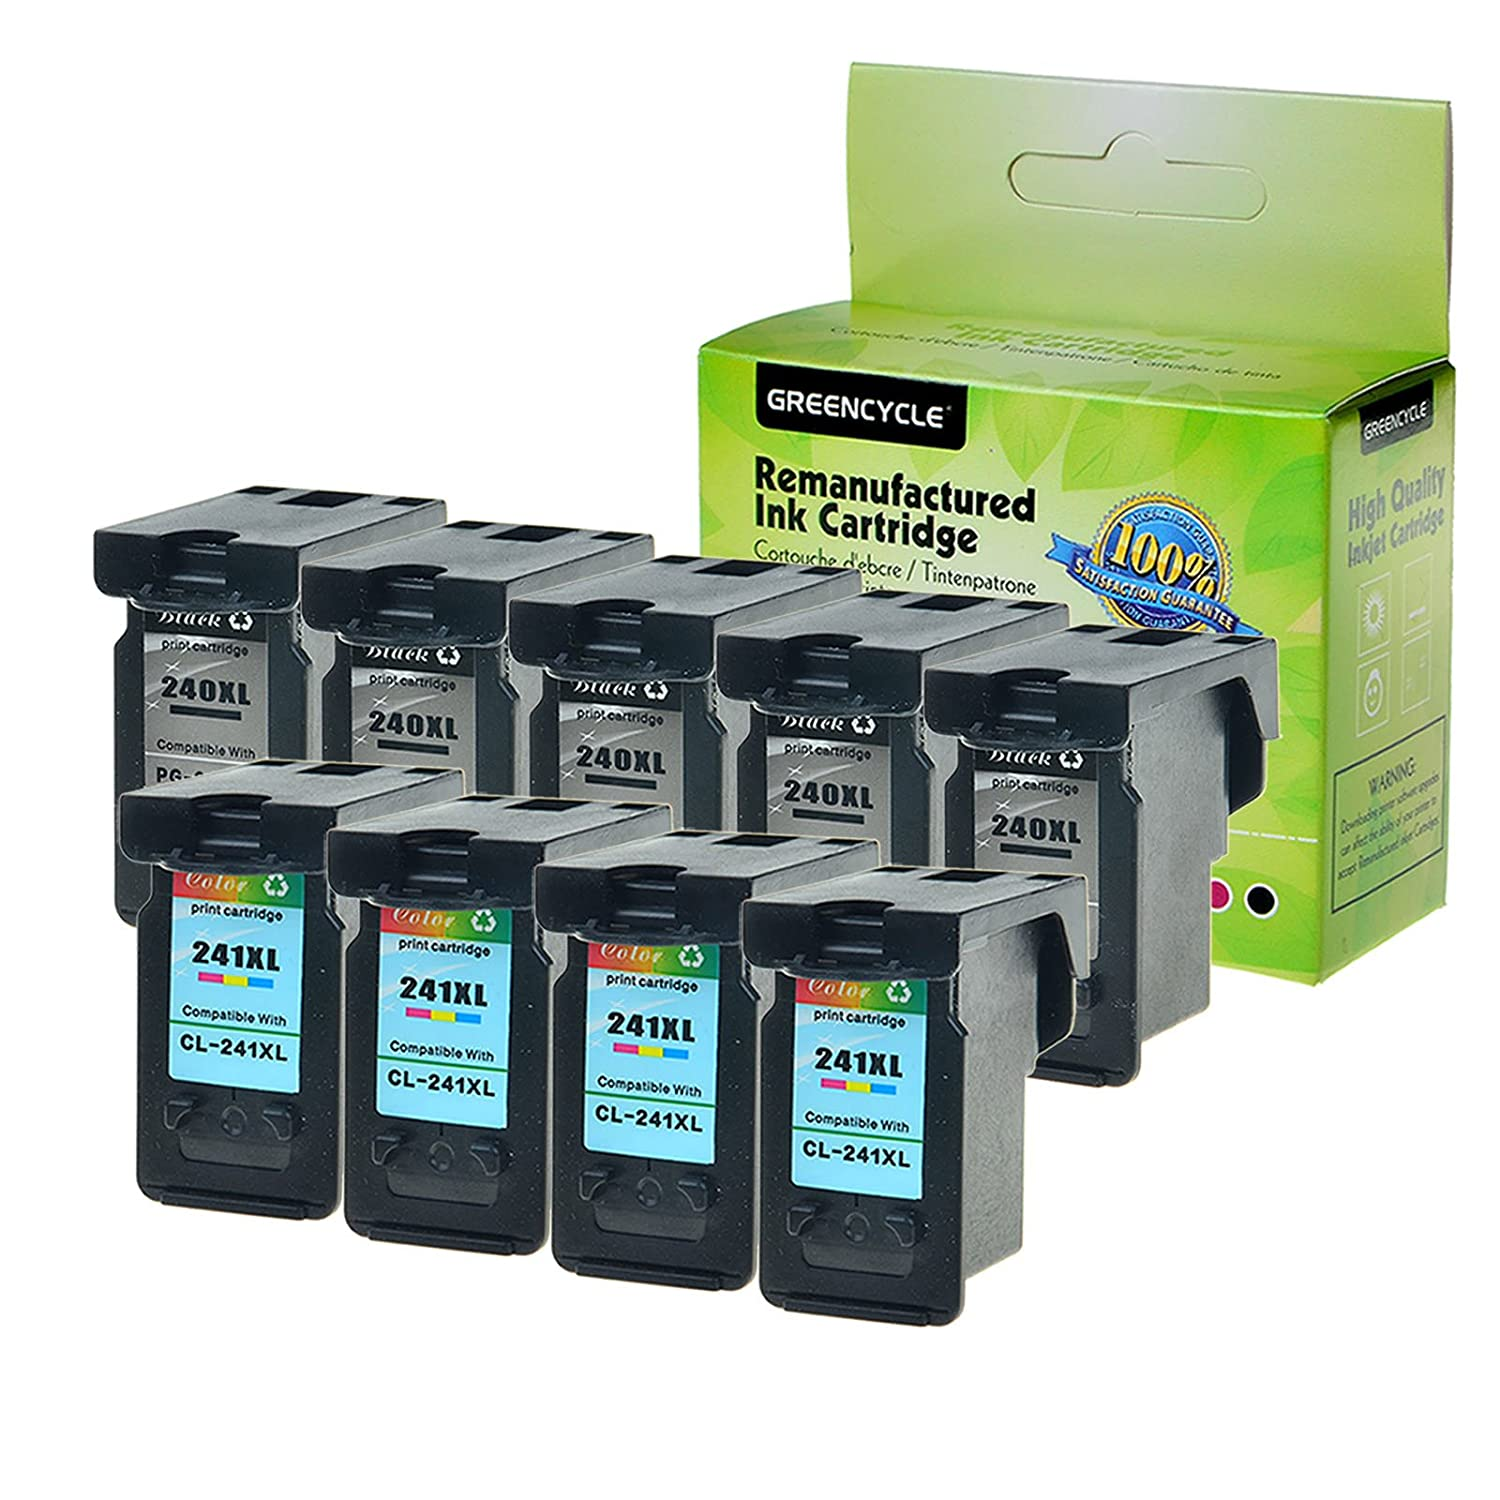 Greencycle 9pk Remanufactured for Canon PG - 240 X L XL 240 CL - 241 X L 241 XLインクカートリッジ高Yield for Pixma mg3620 mg3520 mg4220 mg3220 mg2220 mx392 mx432 mx452 mx472 mx512 mg3522 5ブラック4 3色 B07FF51SY4